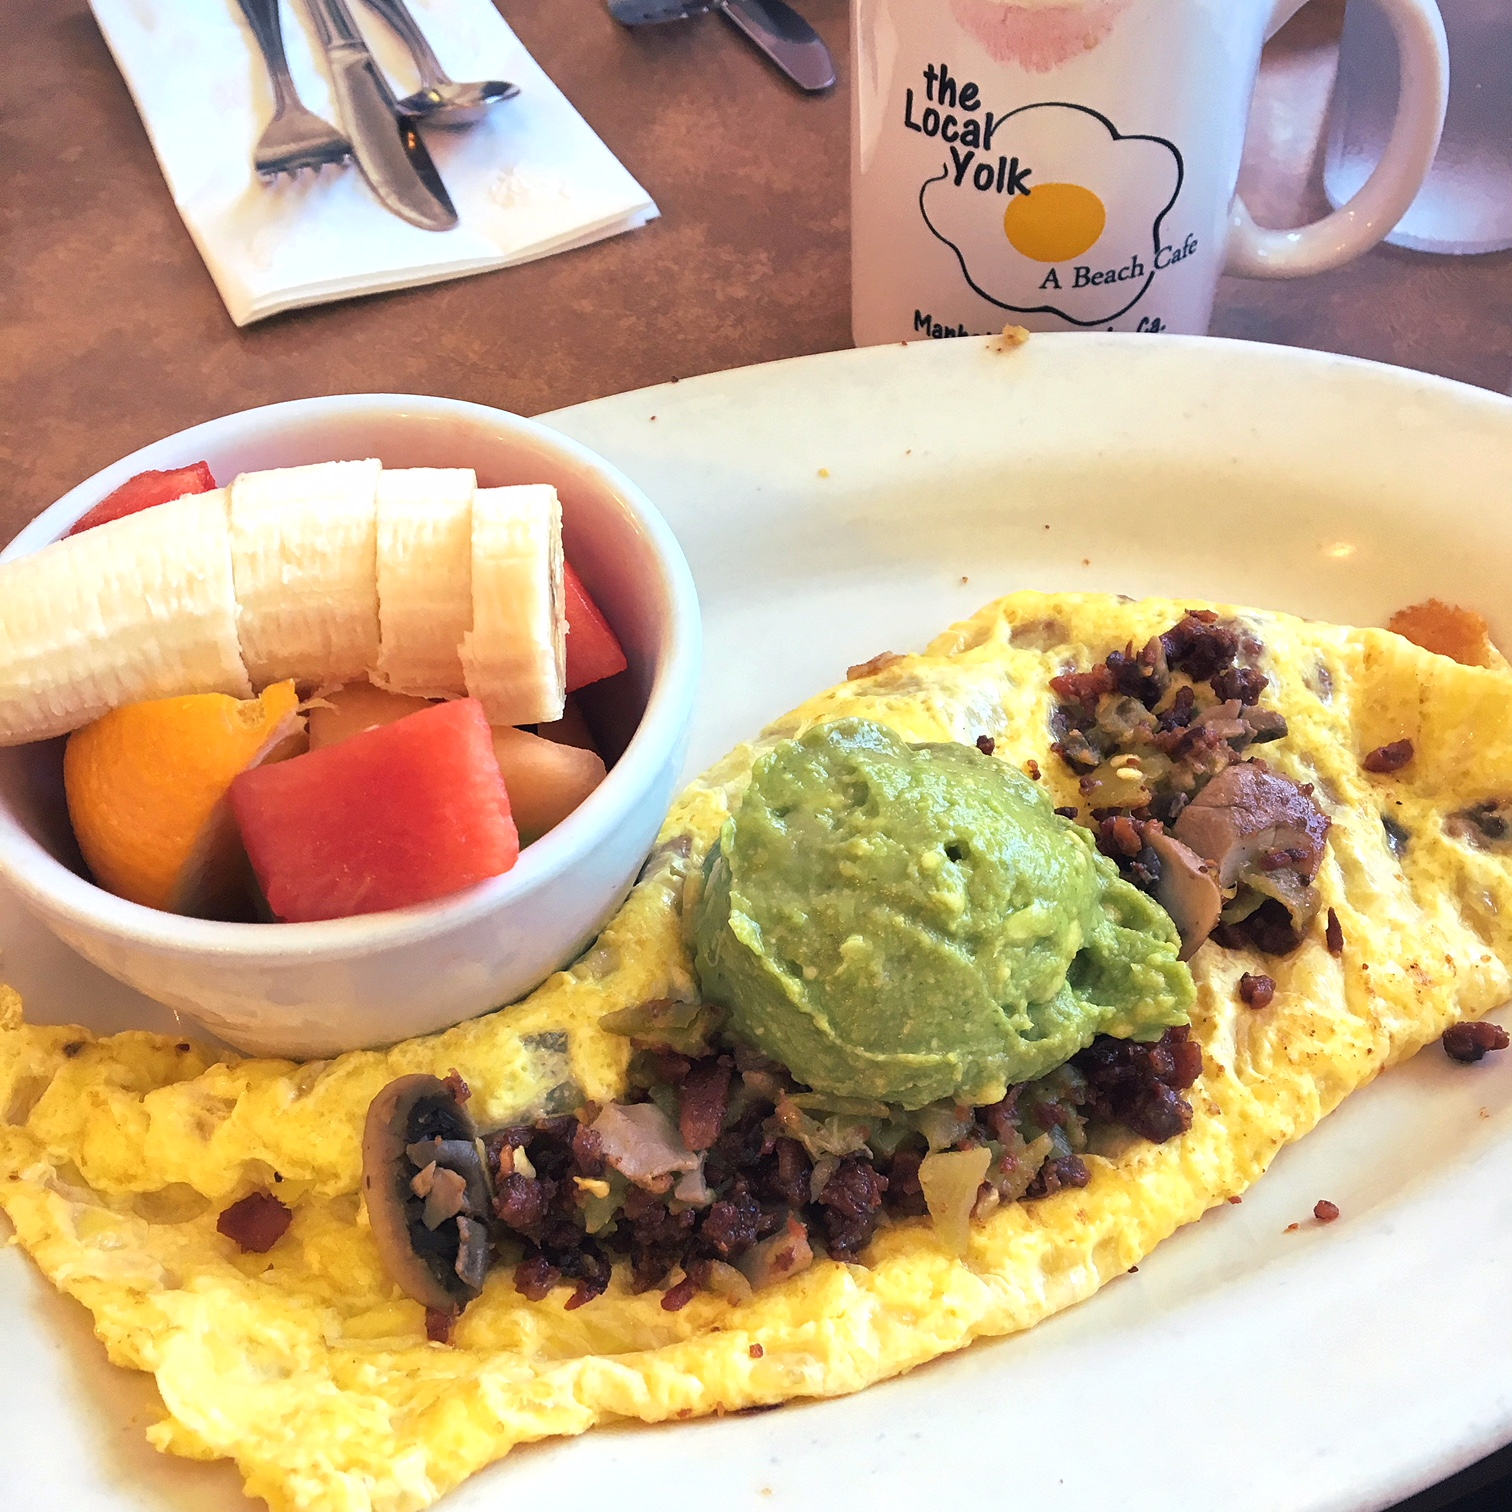 The Local Yolk, Los Angeles, CA (best omelette I ever had)